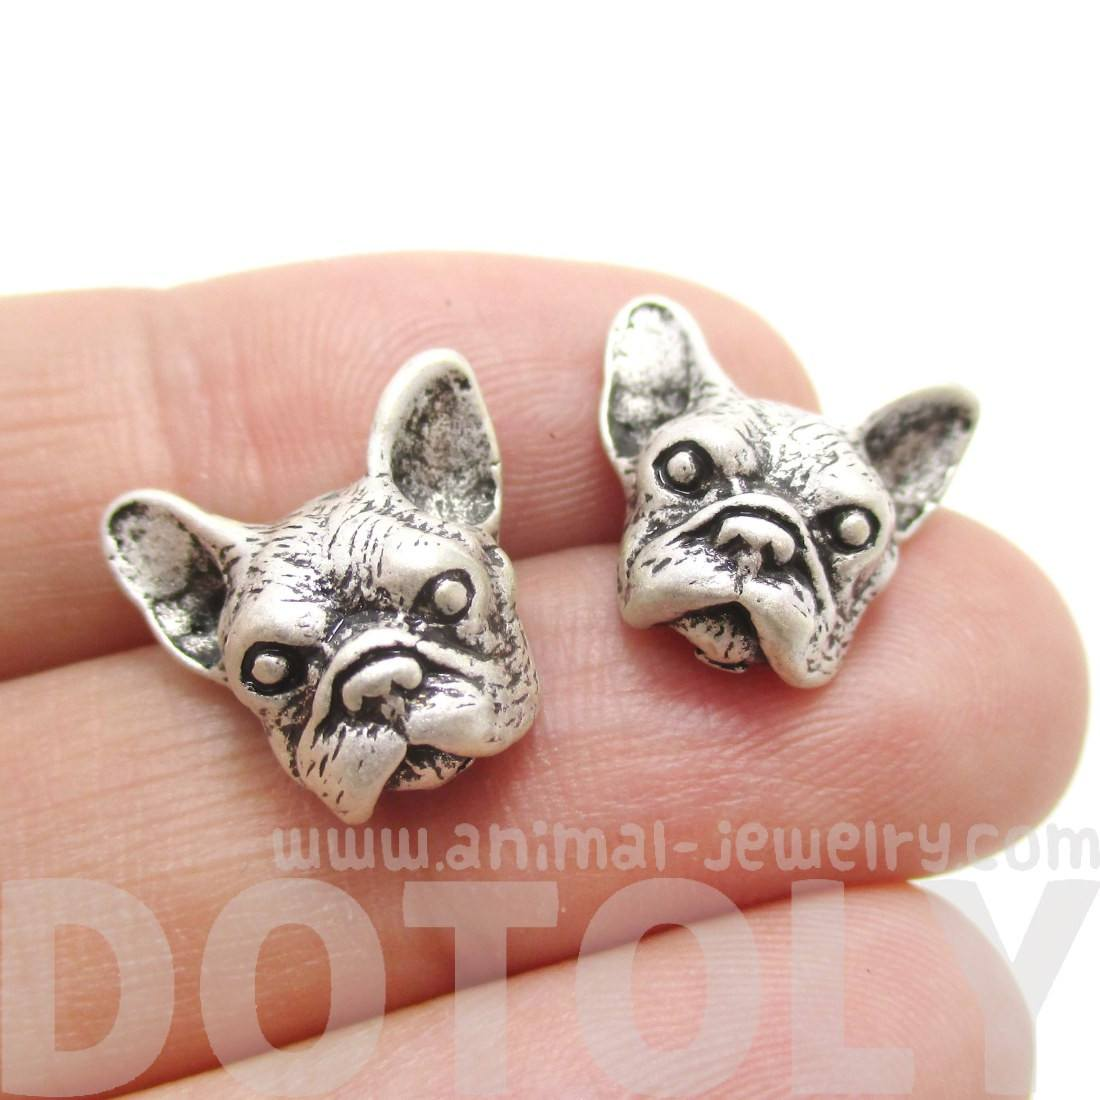 French Bulldog Dog Face Shaped Stud Earrings in Silver